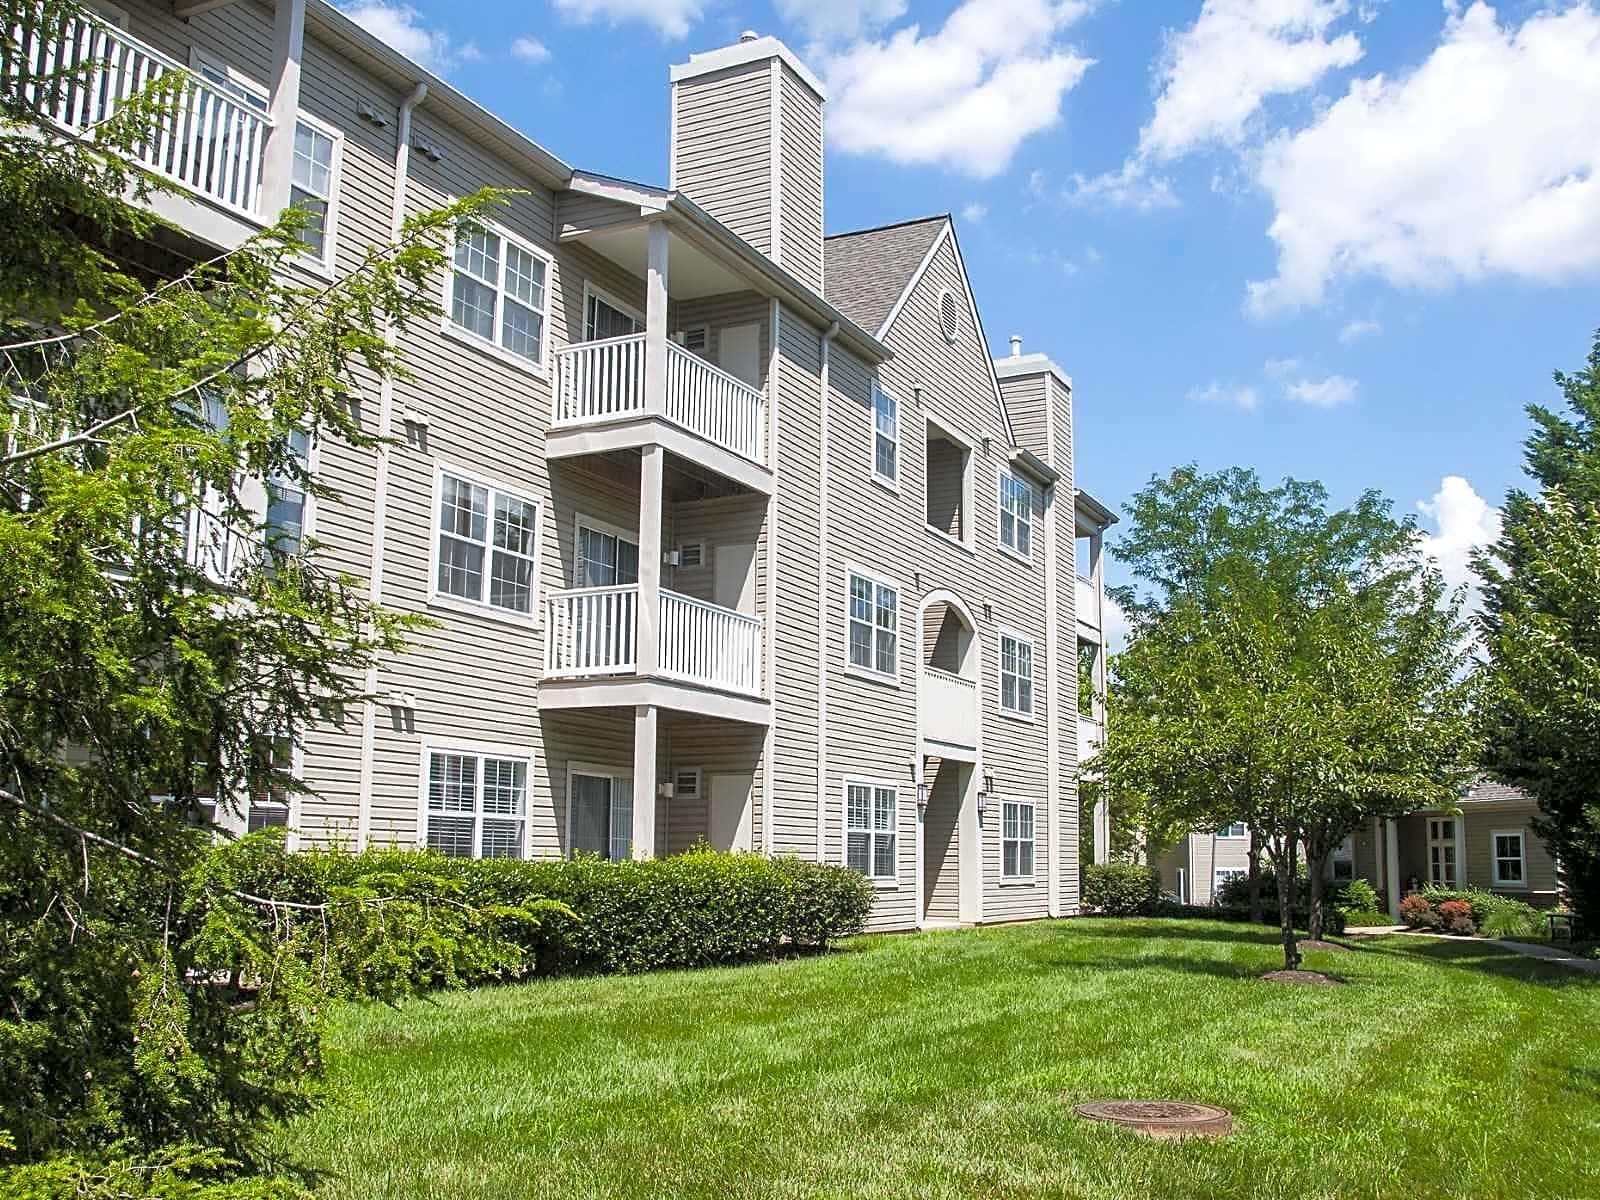 Apartments And Houses For Rent In Frederick